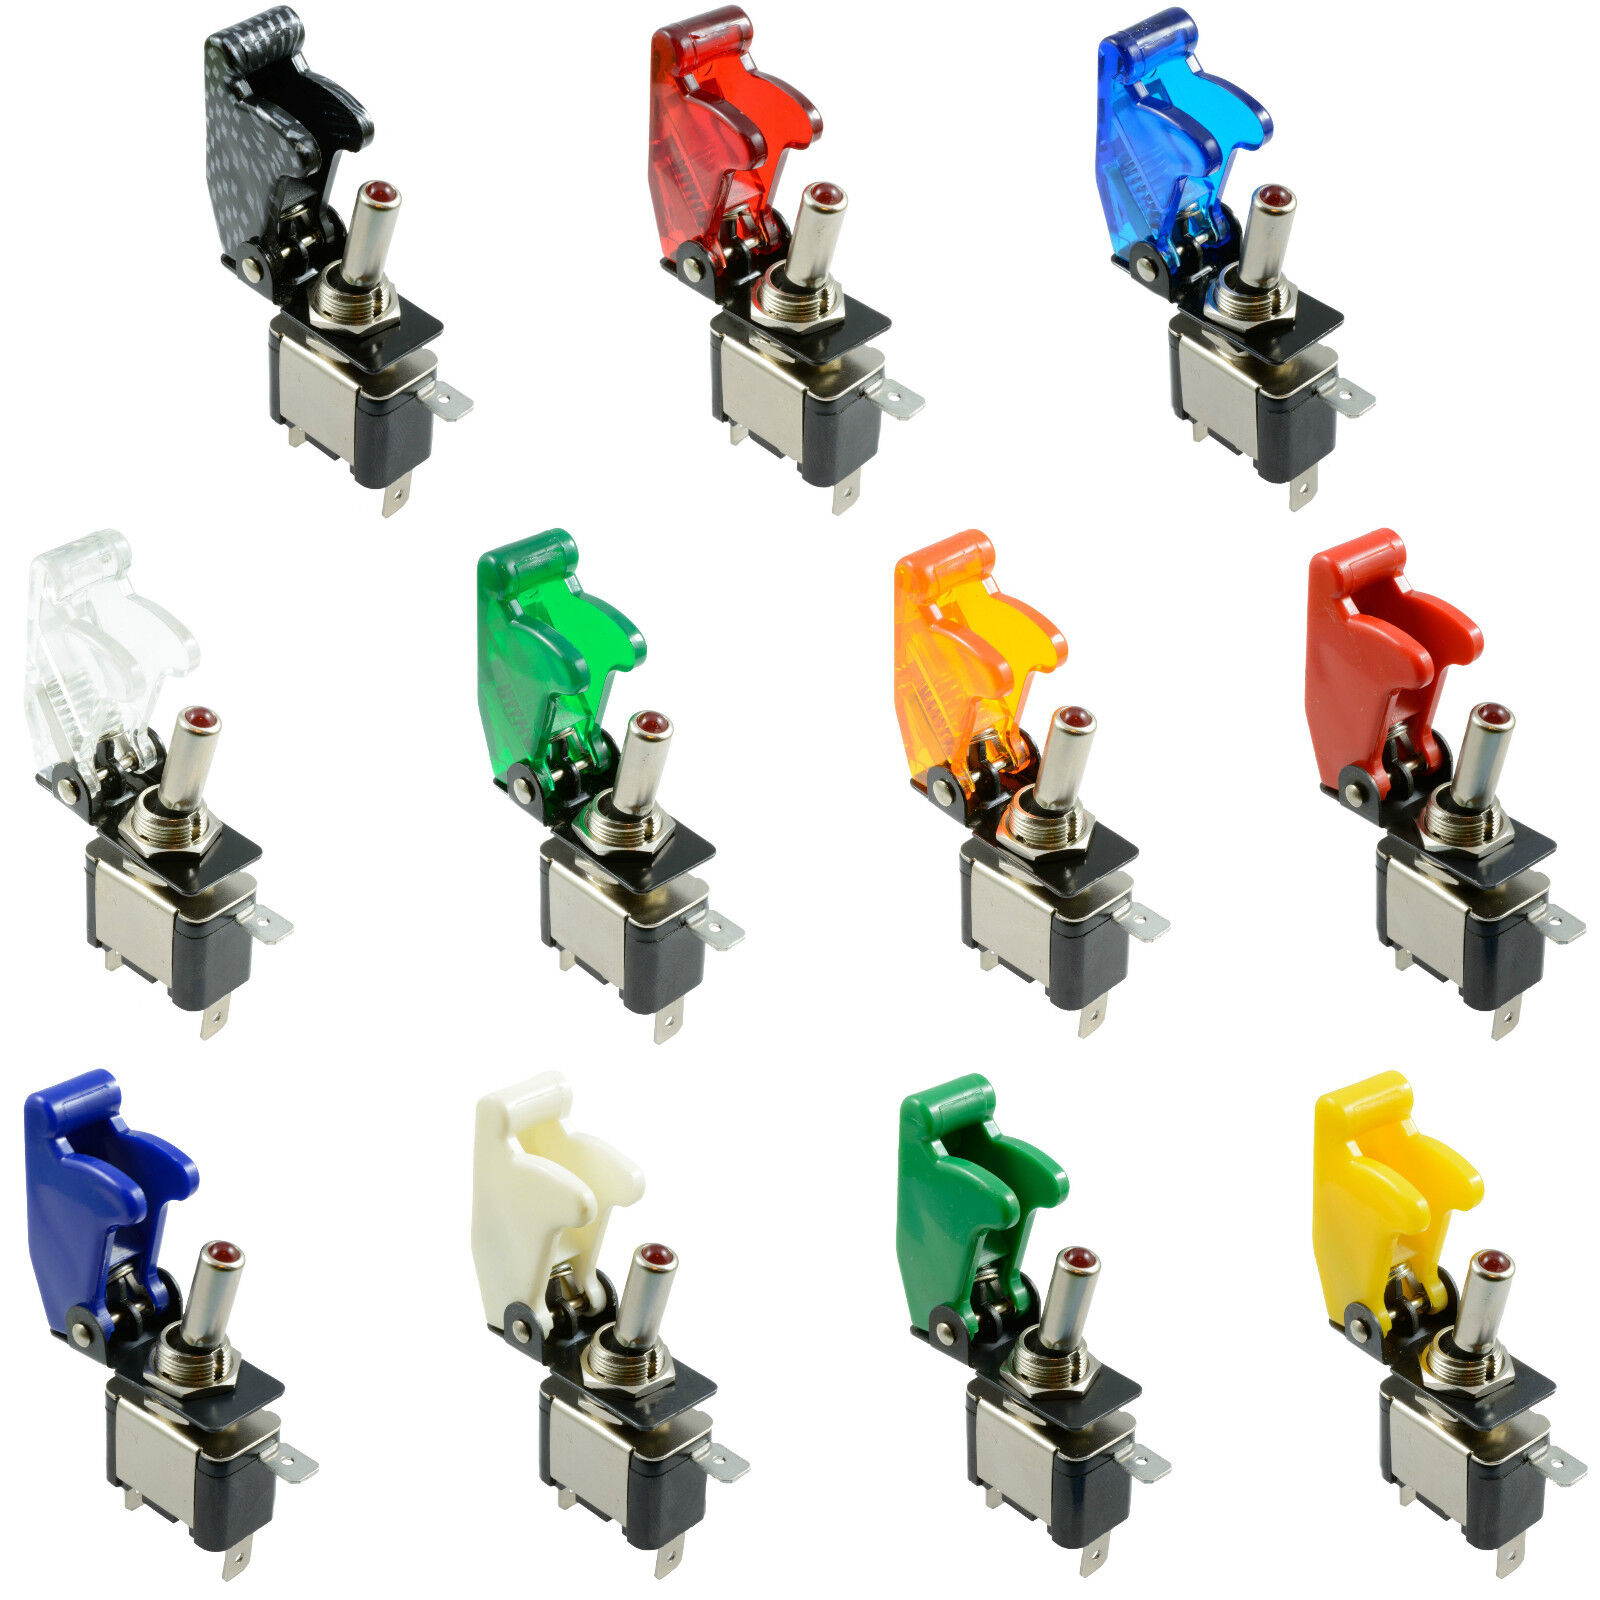 illuminated LED Toggle Switch With Missile Style Flick Cover 12V Car Dash SPST